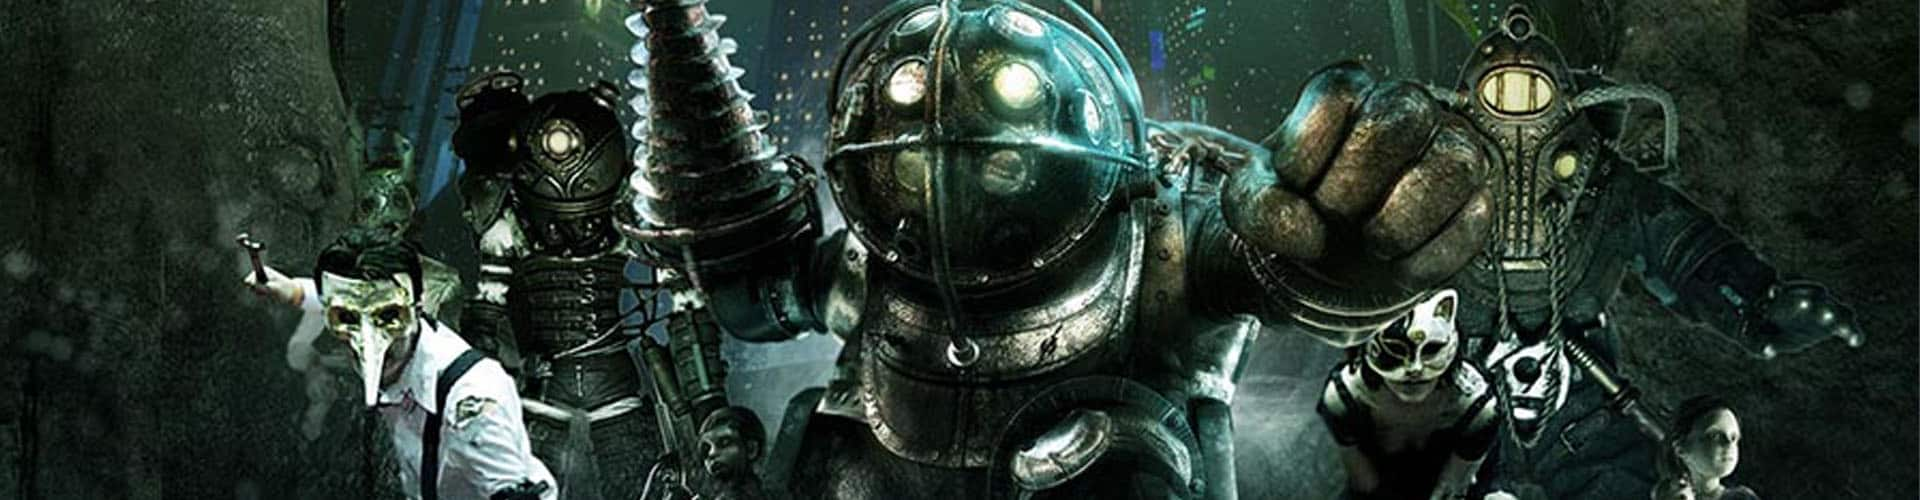 BioShock Game Order – The Complete List